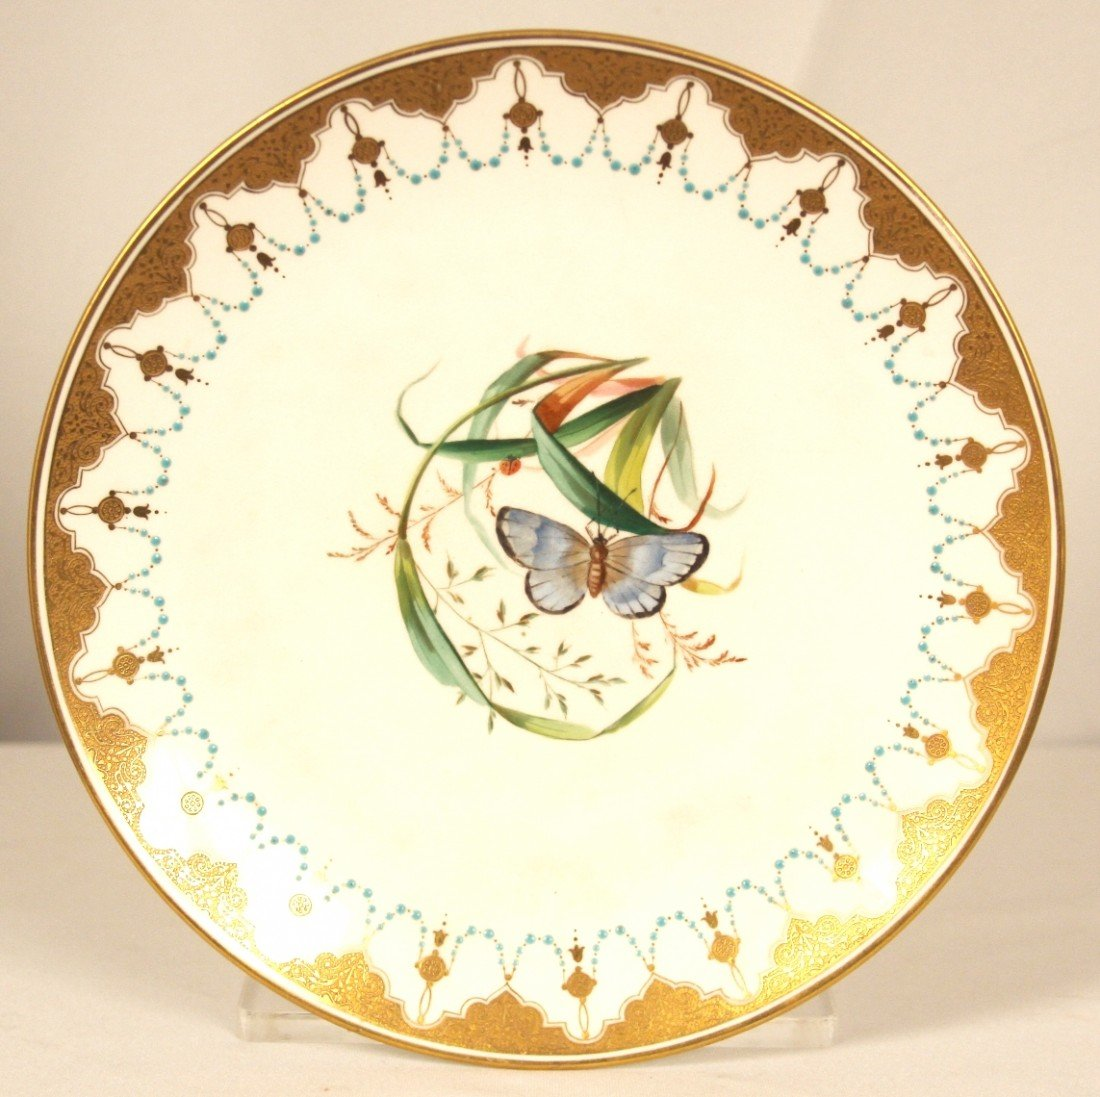 Antique Mintons Plate Blue Butterfly Hand Painted 1873-